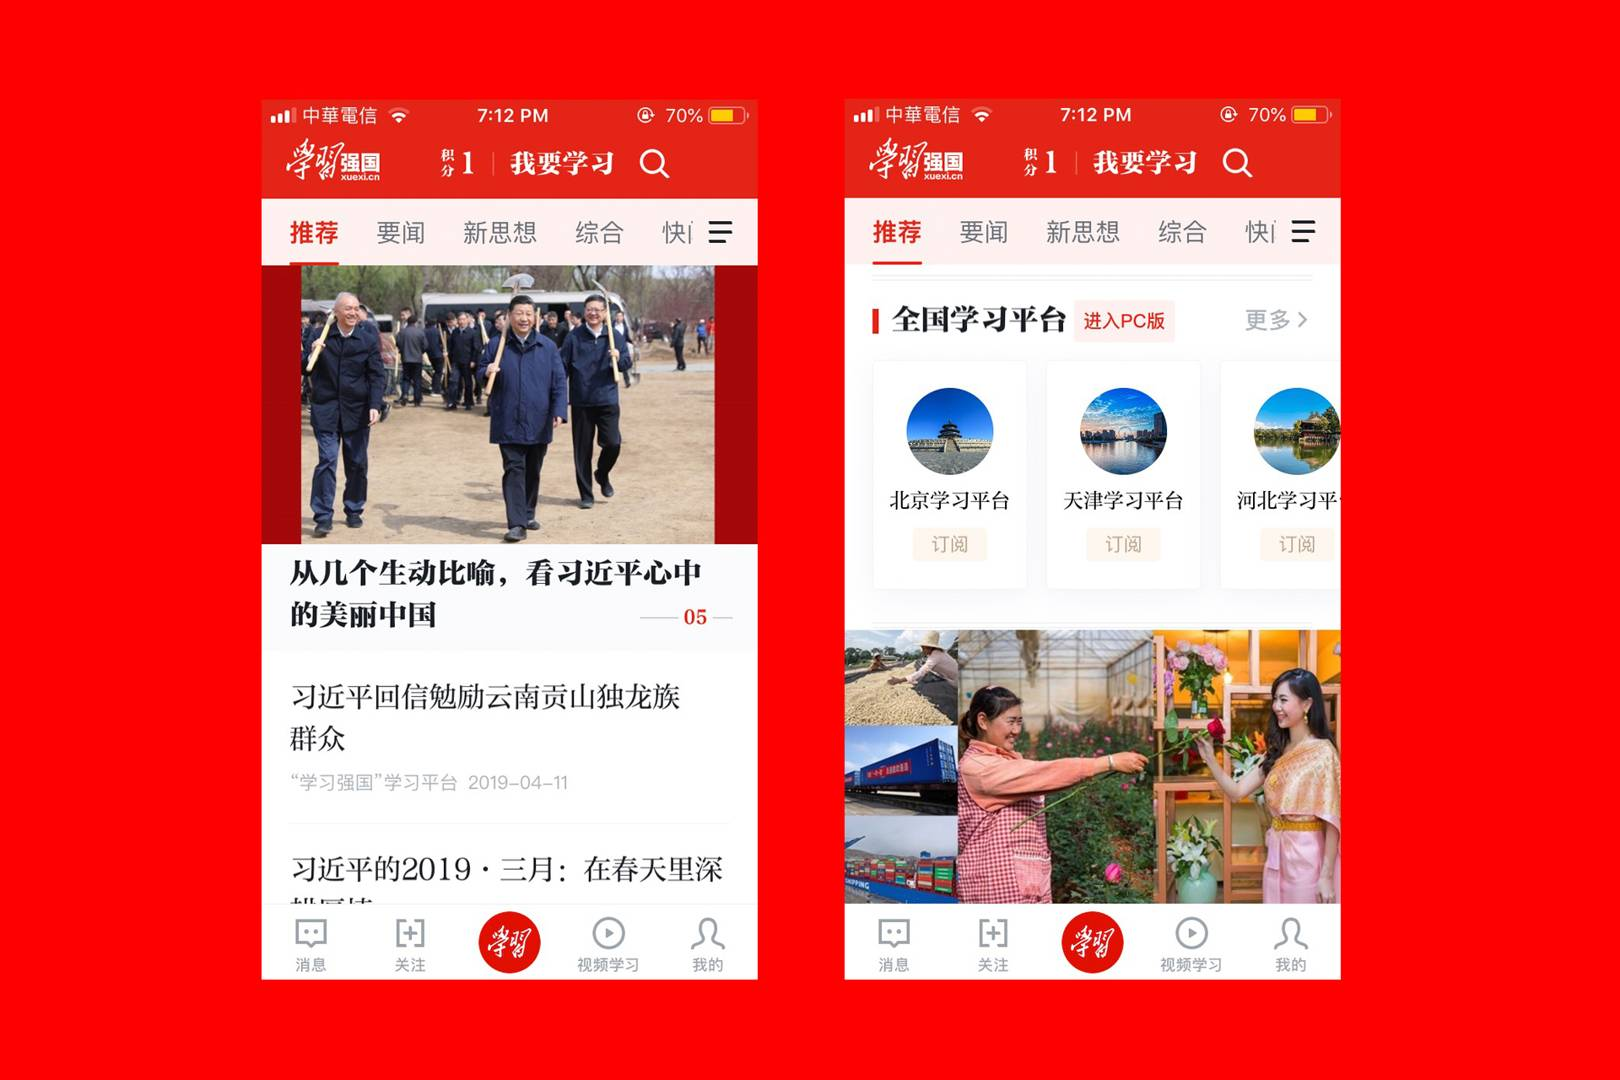 The odd reality of life under China's Orwellian propaganda app